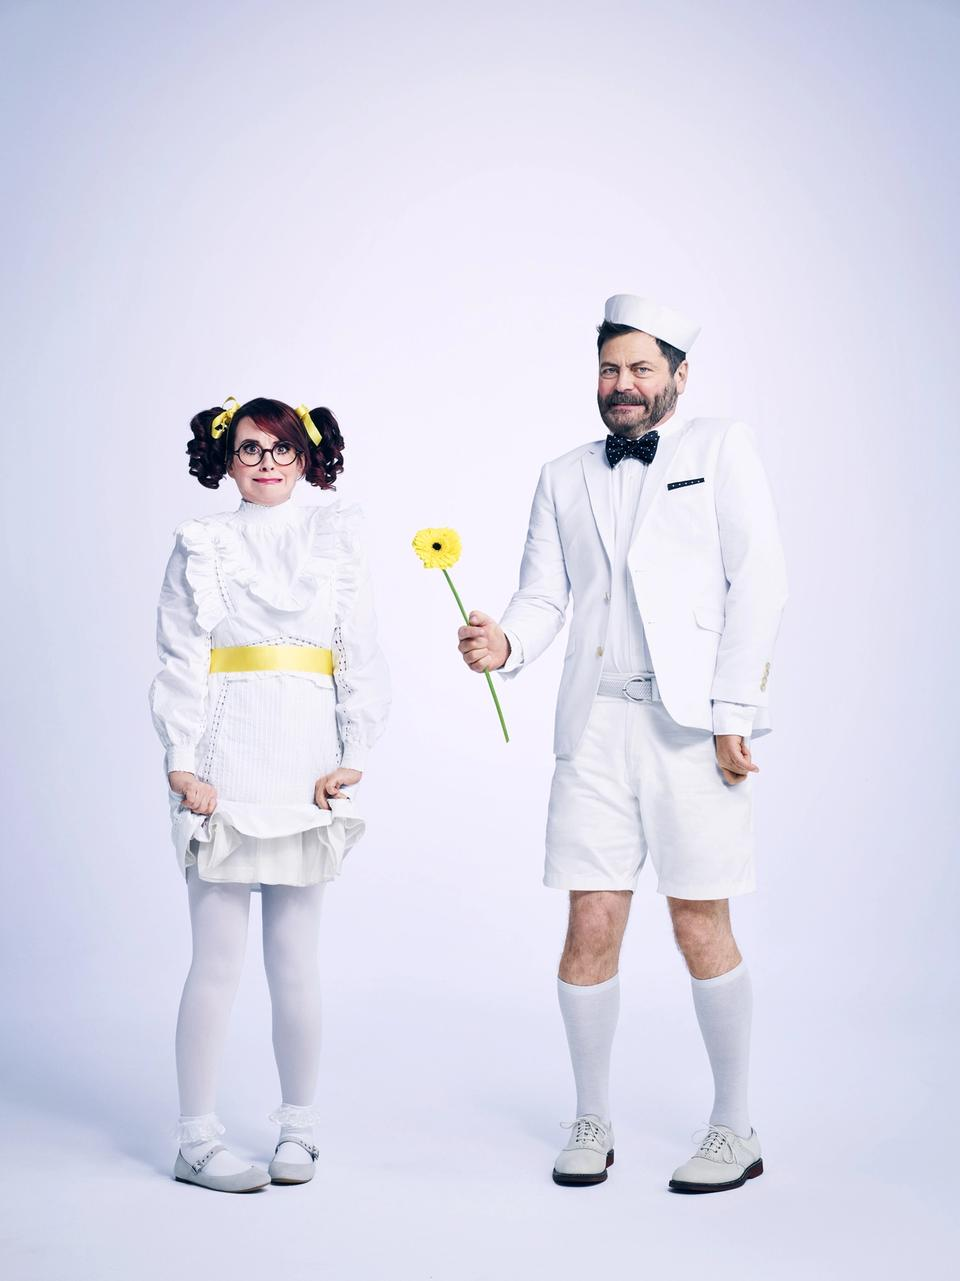 Megan & Nick dresses up as young children in all white clothing. Both looking awkward. Nick holding a yellow flower.